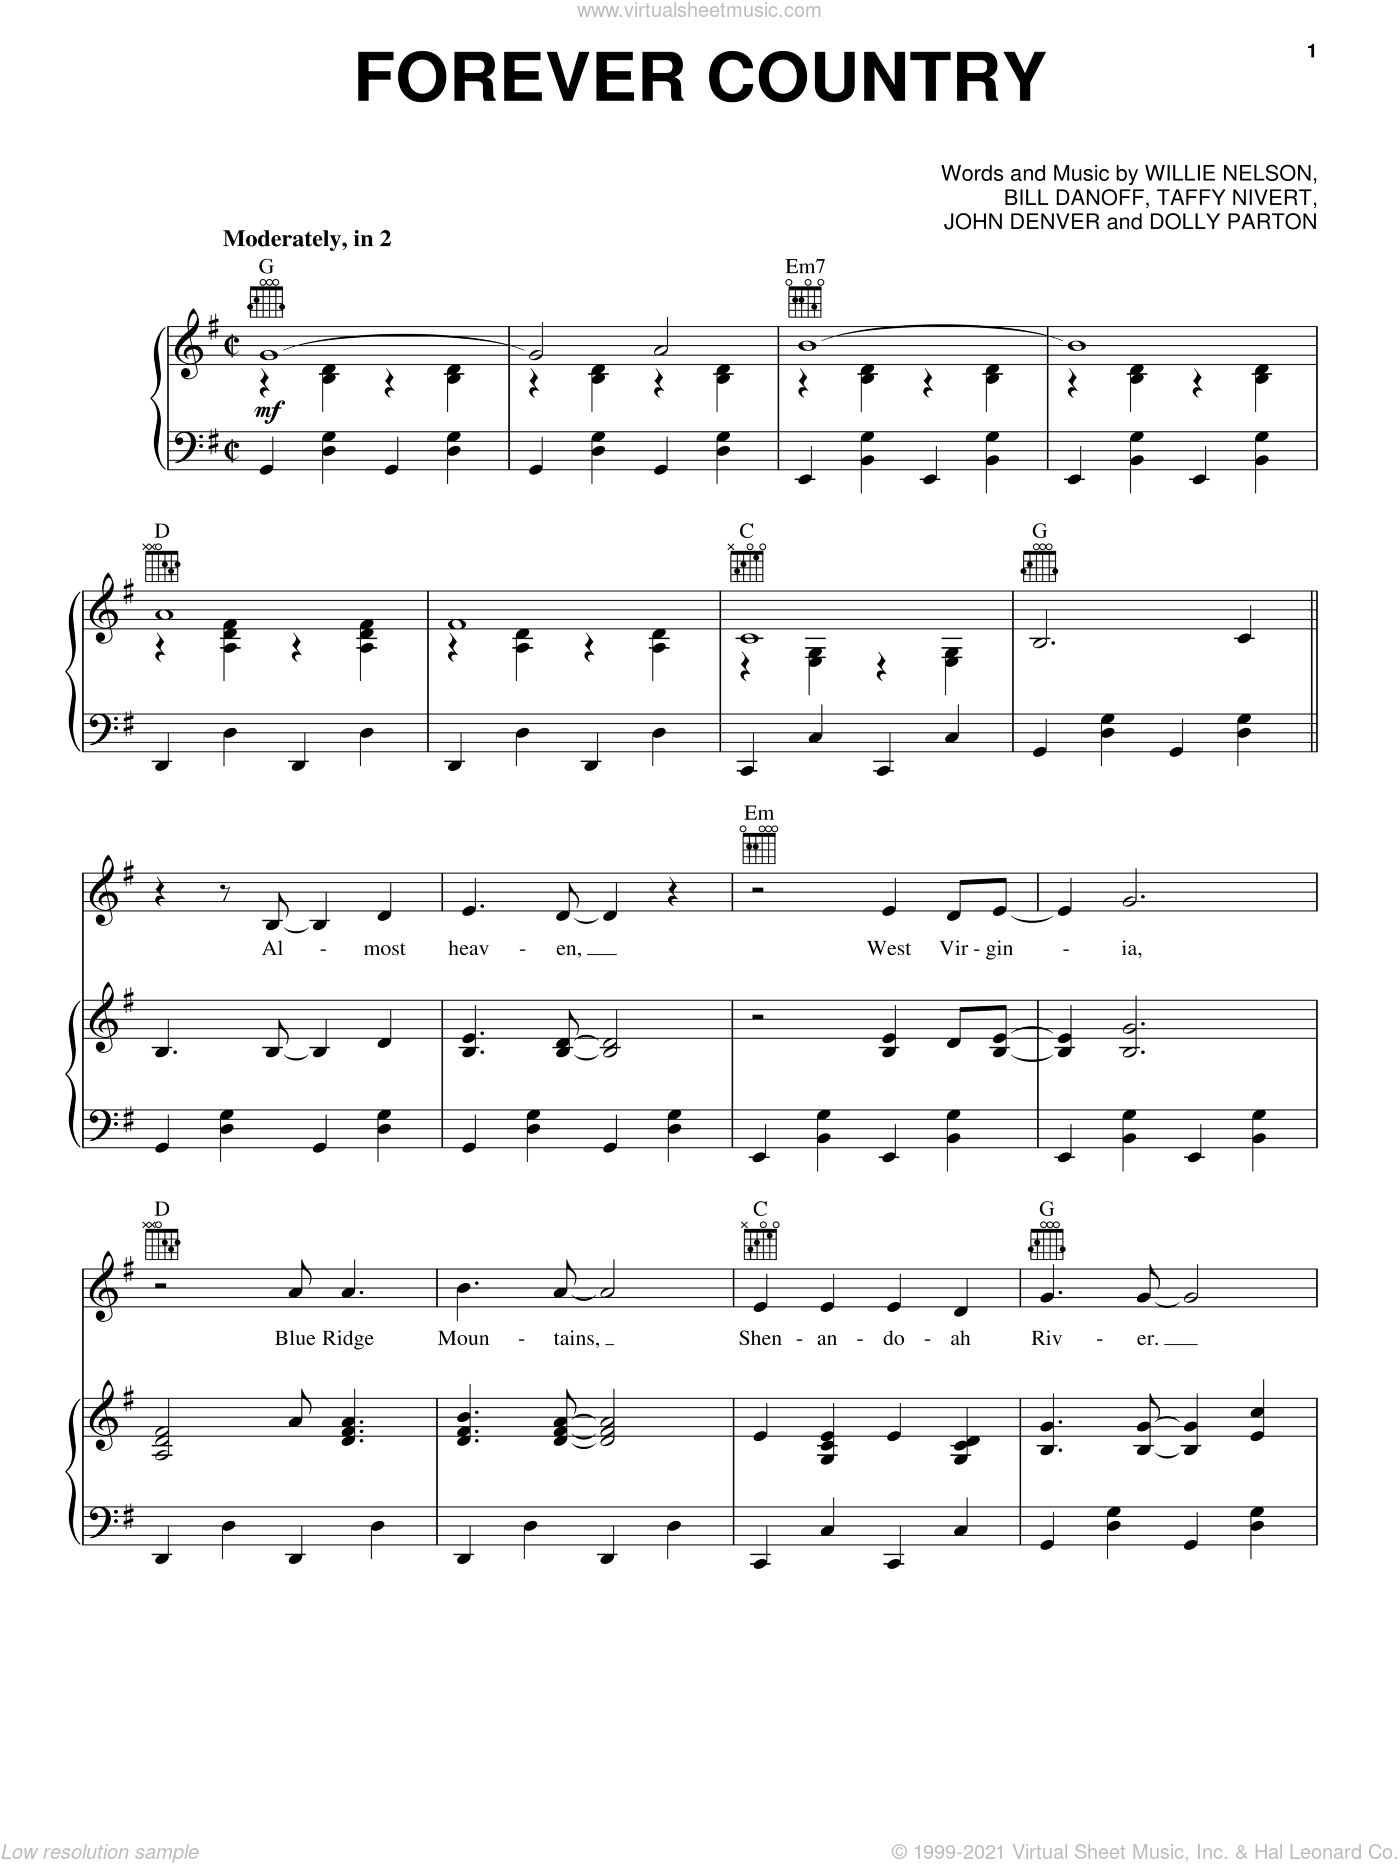 Forever Country sheet music for voice, piano or guitar by Artists of Then, Now & Forever, Bill Danoff, Dolly Parton, John Denver, Taffy Nivert and Willie Nelson, intermediate skill level